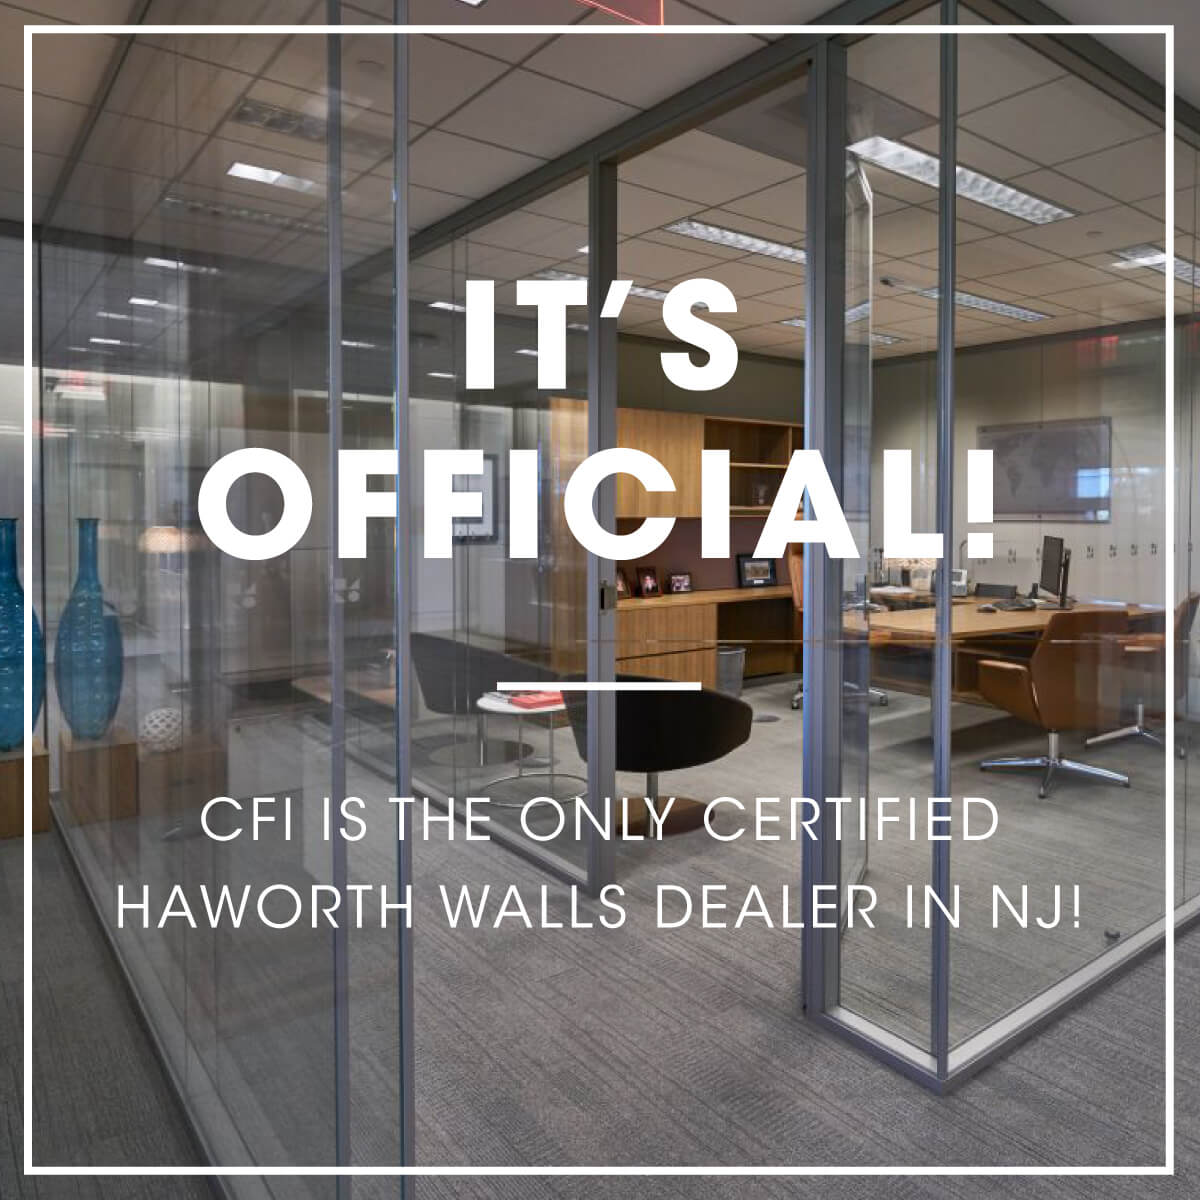 CFI is the ONLY certified walls dealer in NJ